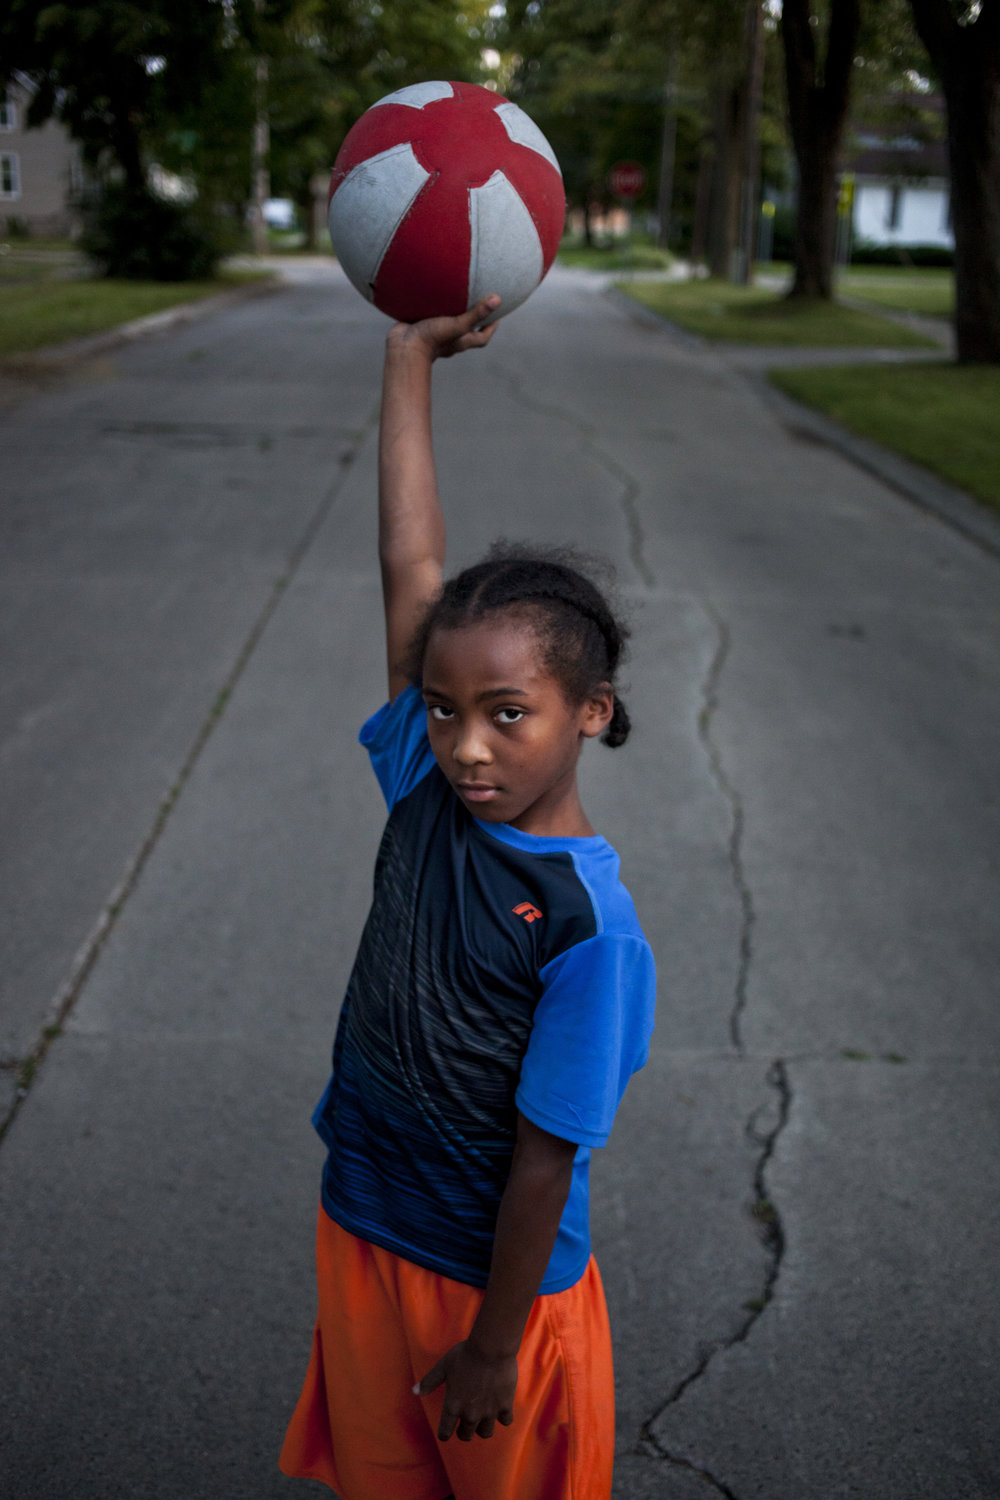 Cameron Nicholson, 9, of Saginaw holds a ball above his head as poses during a break from a game on the Westside of Saginaw.